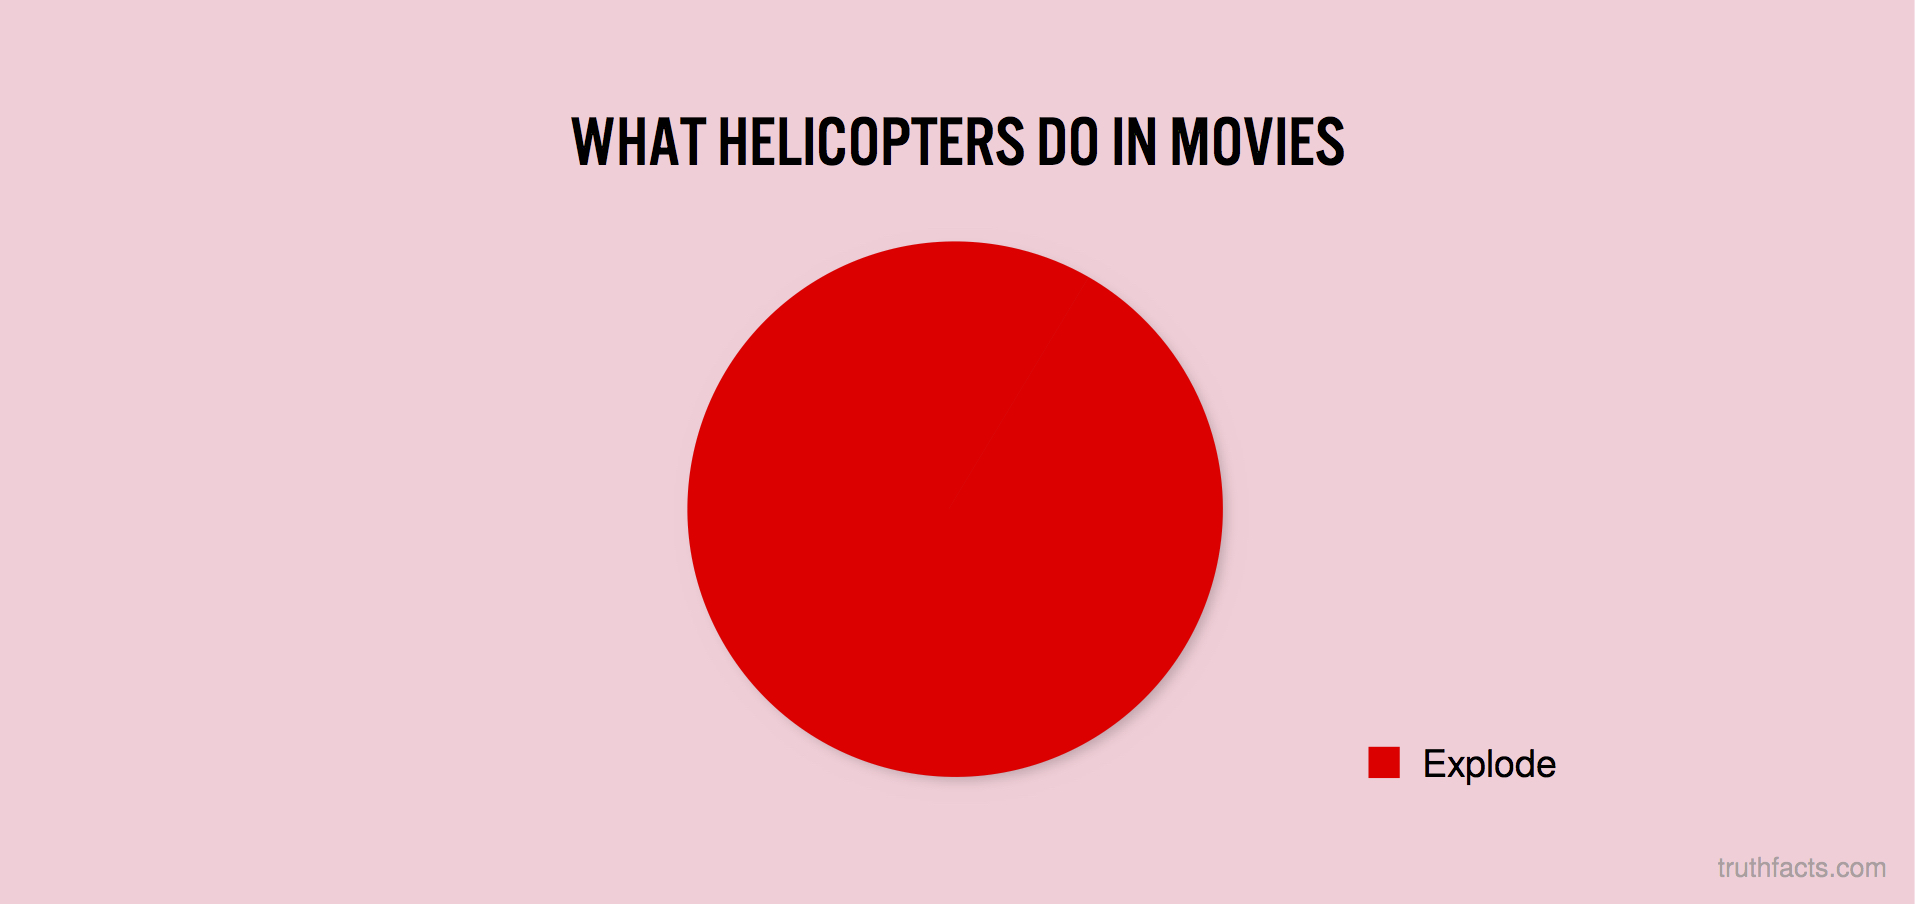 What helicopters do in movies